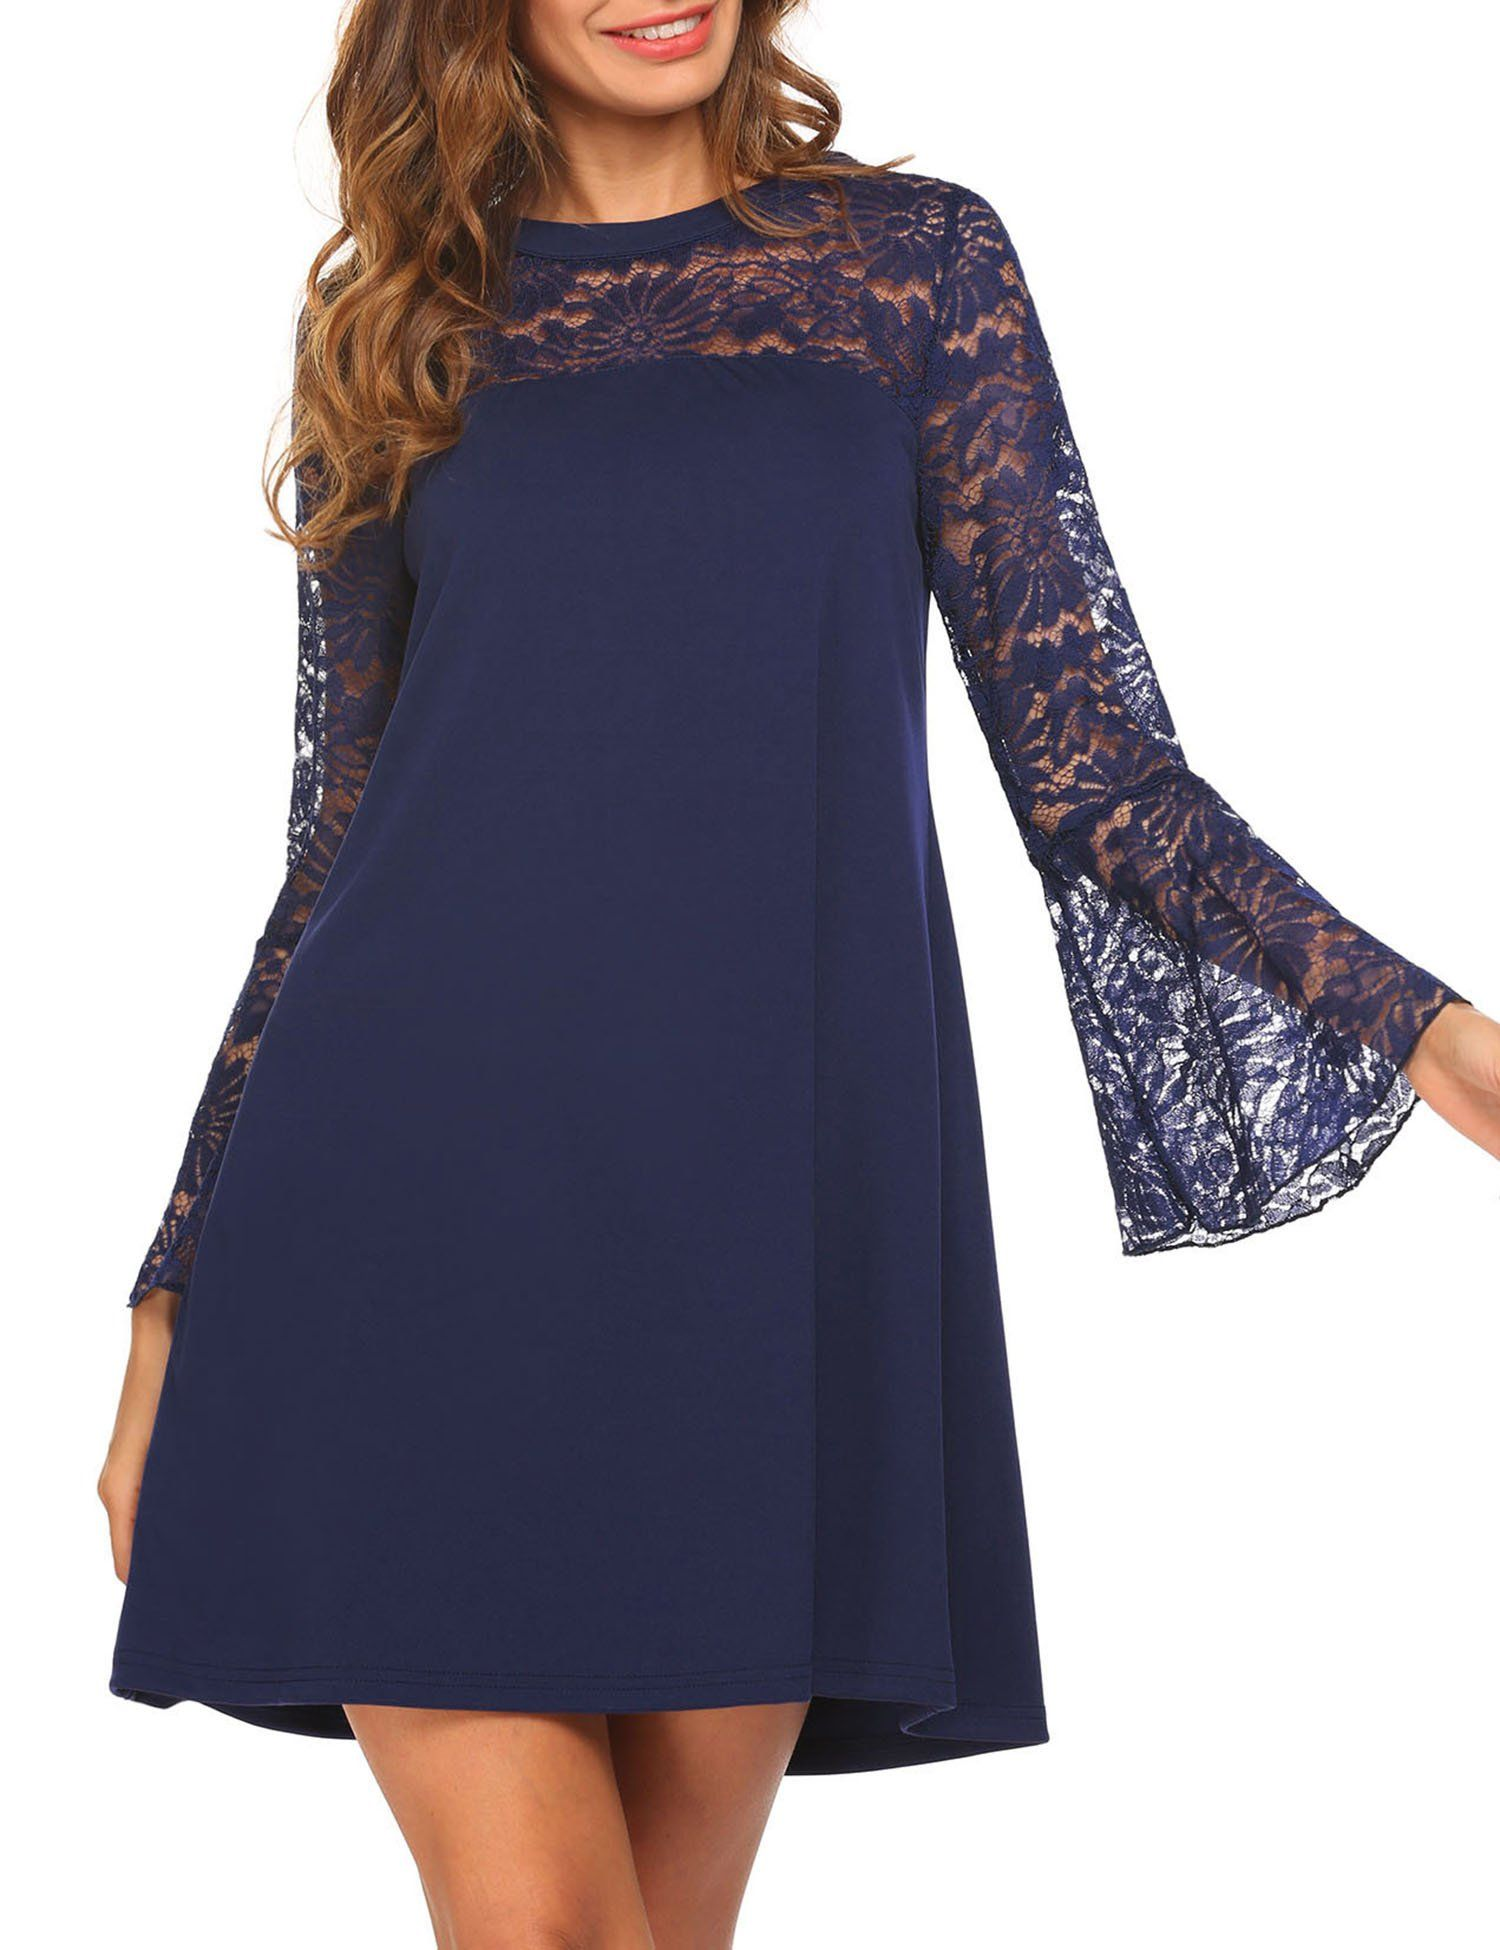 Pasttry women long sleeve floral lace cotton tunic dress navy blue